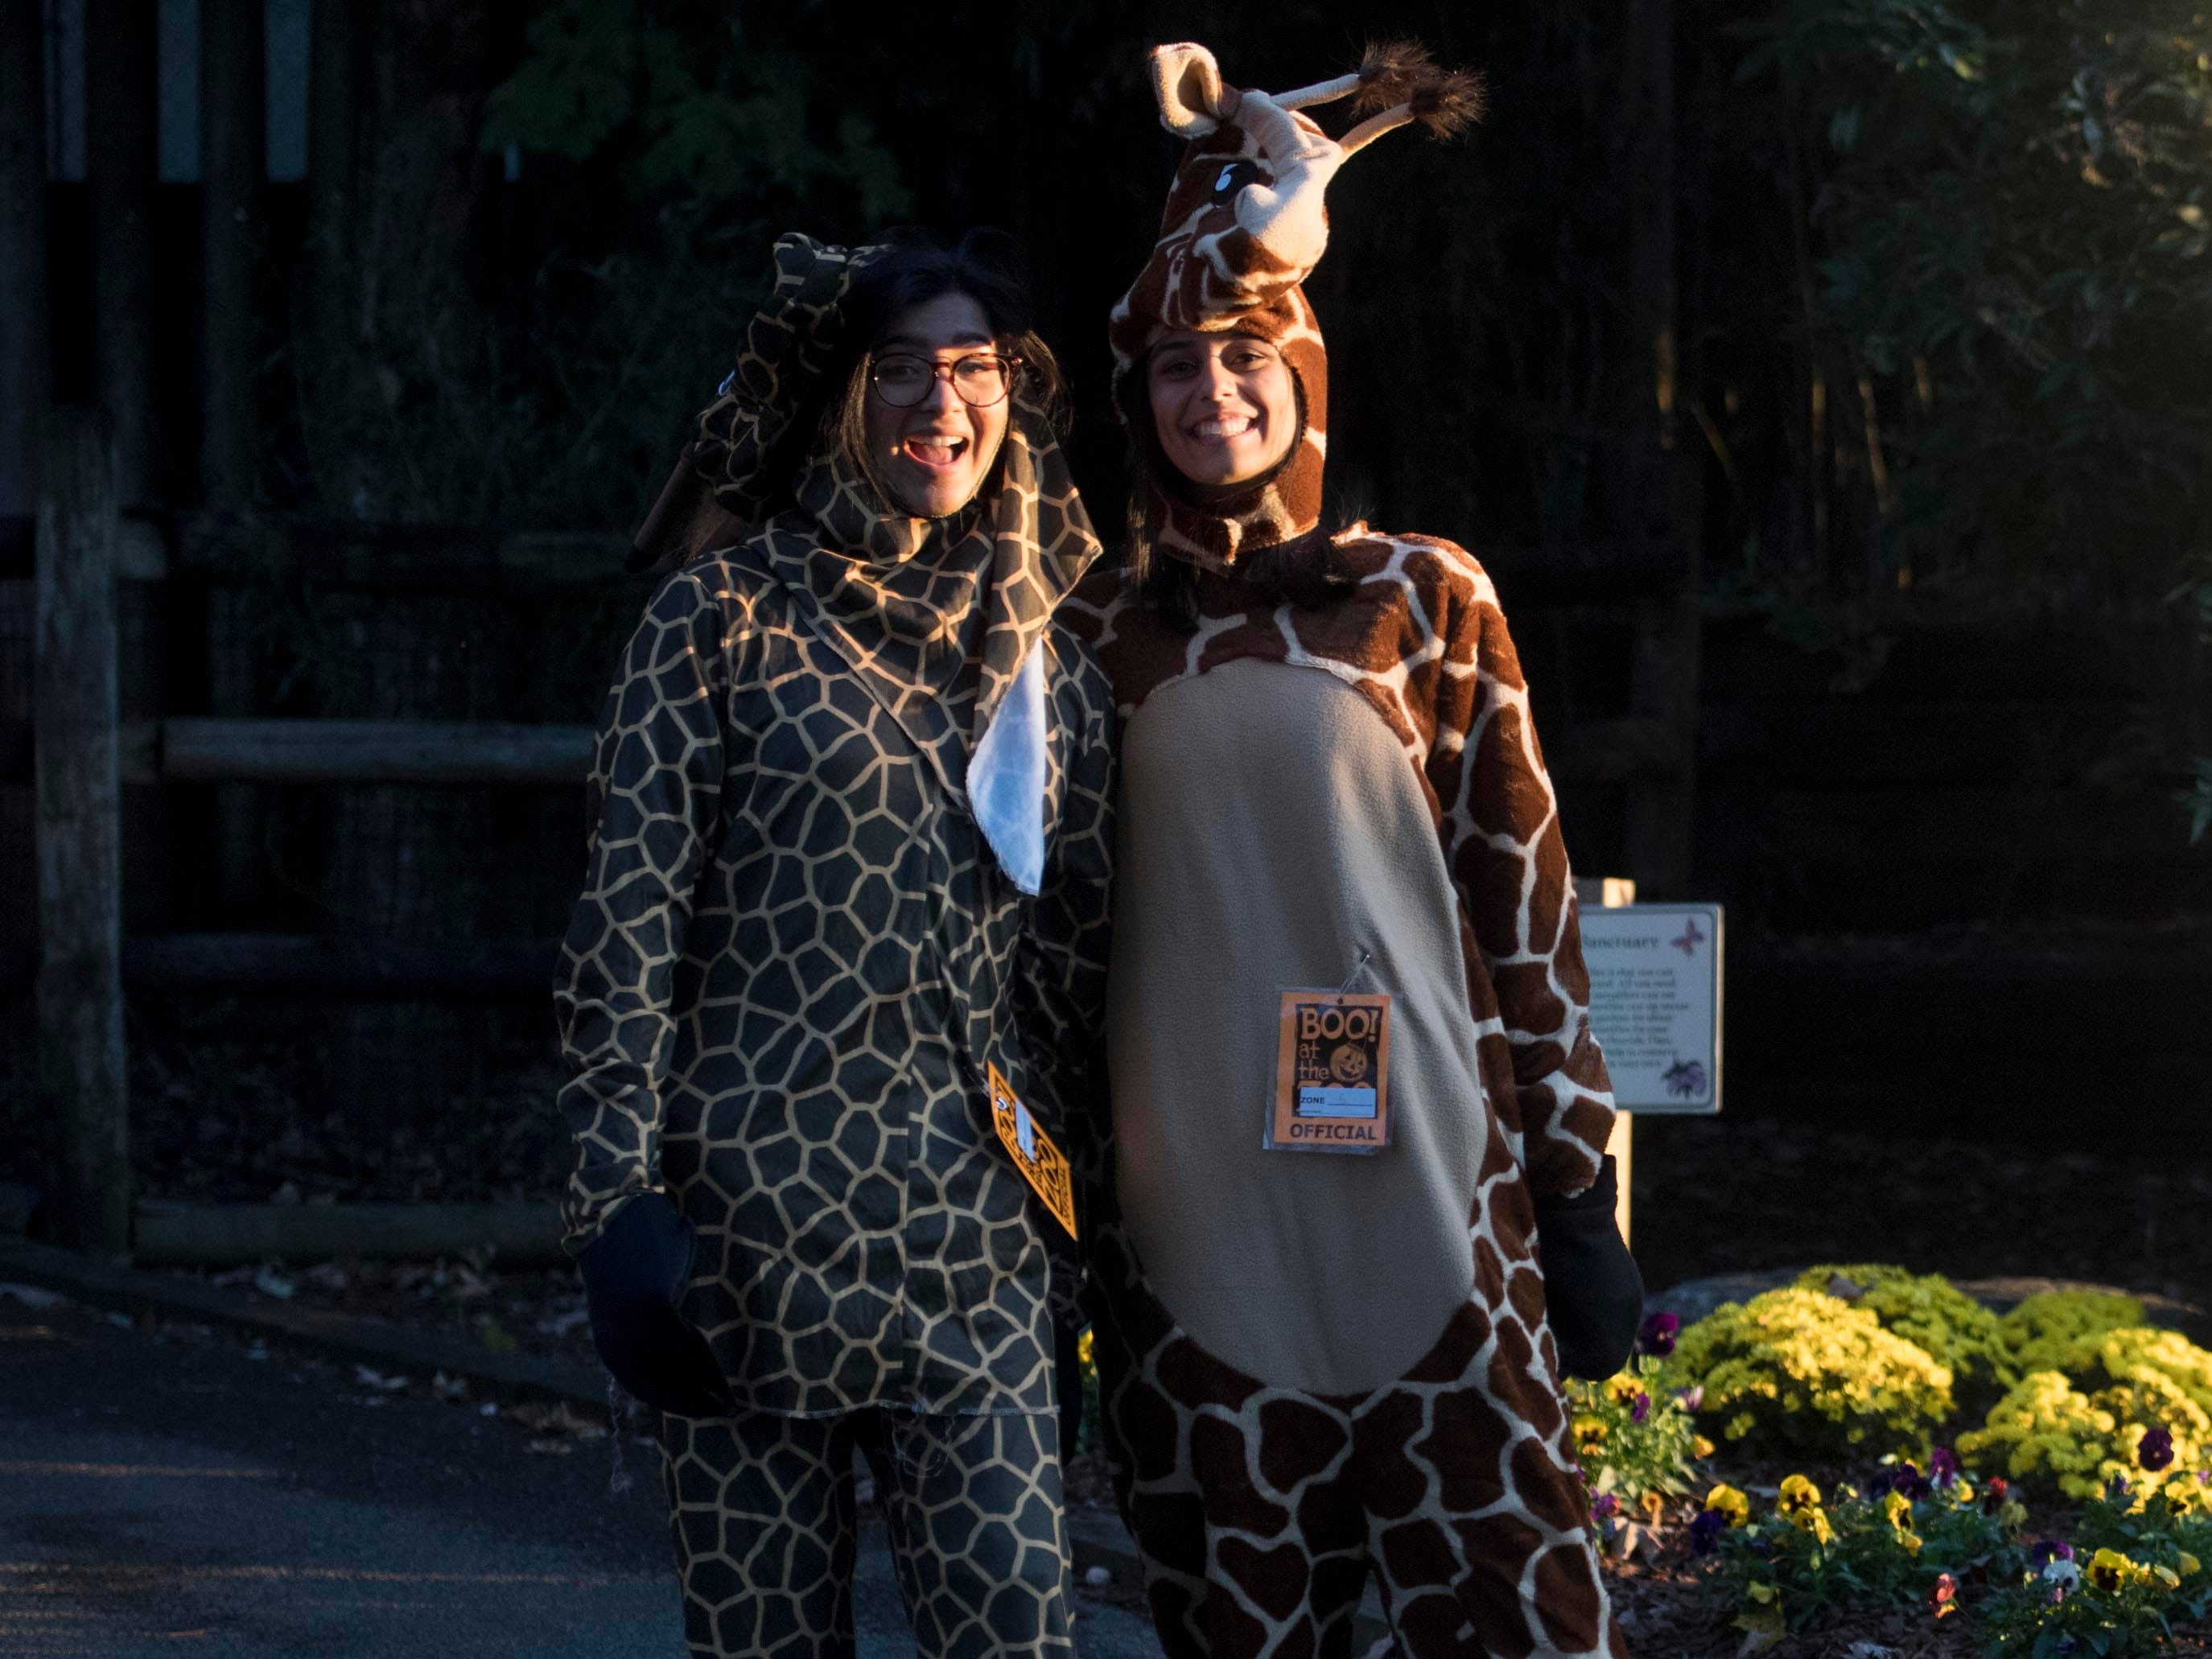 Giraffe costumed volunteers at Zoo Knoxville's Boo! at the Zoo on Saturday, October 20, 2018.